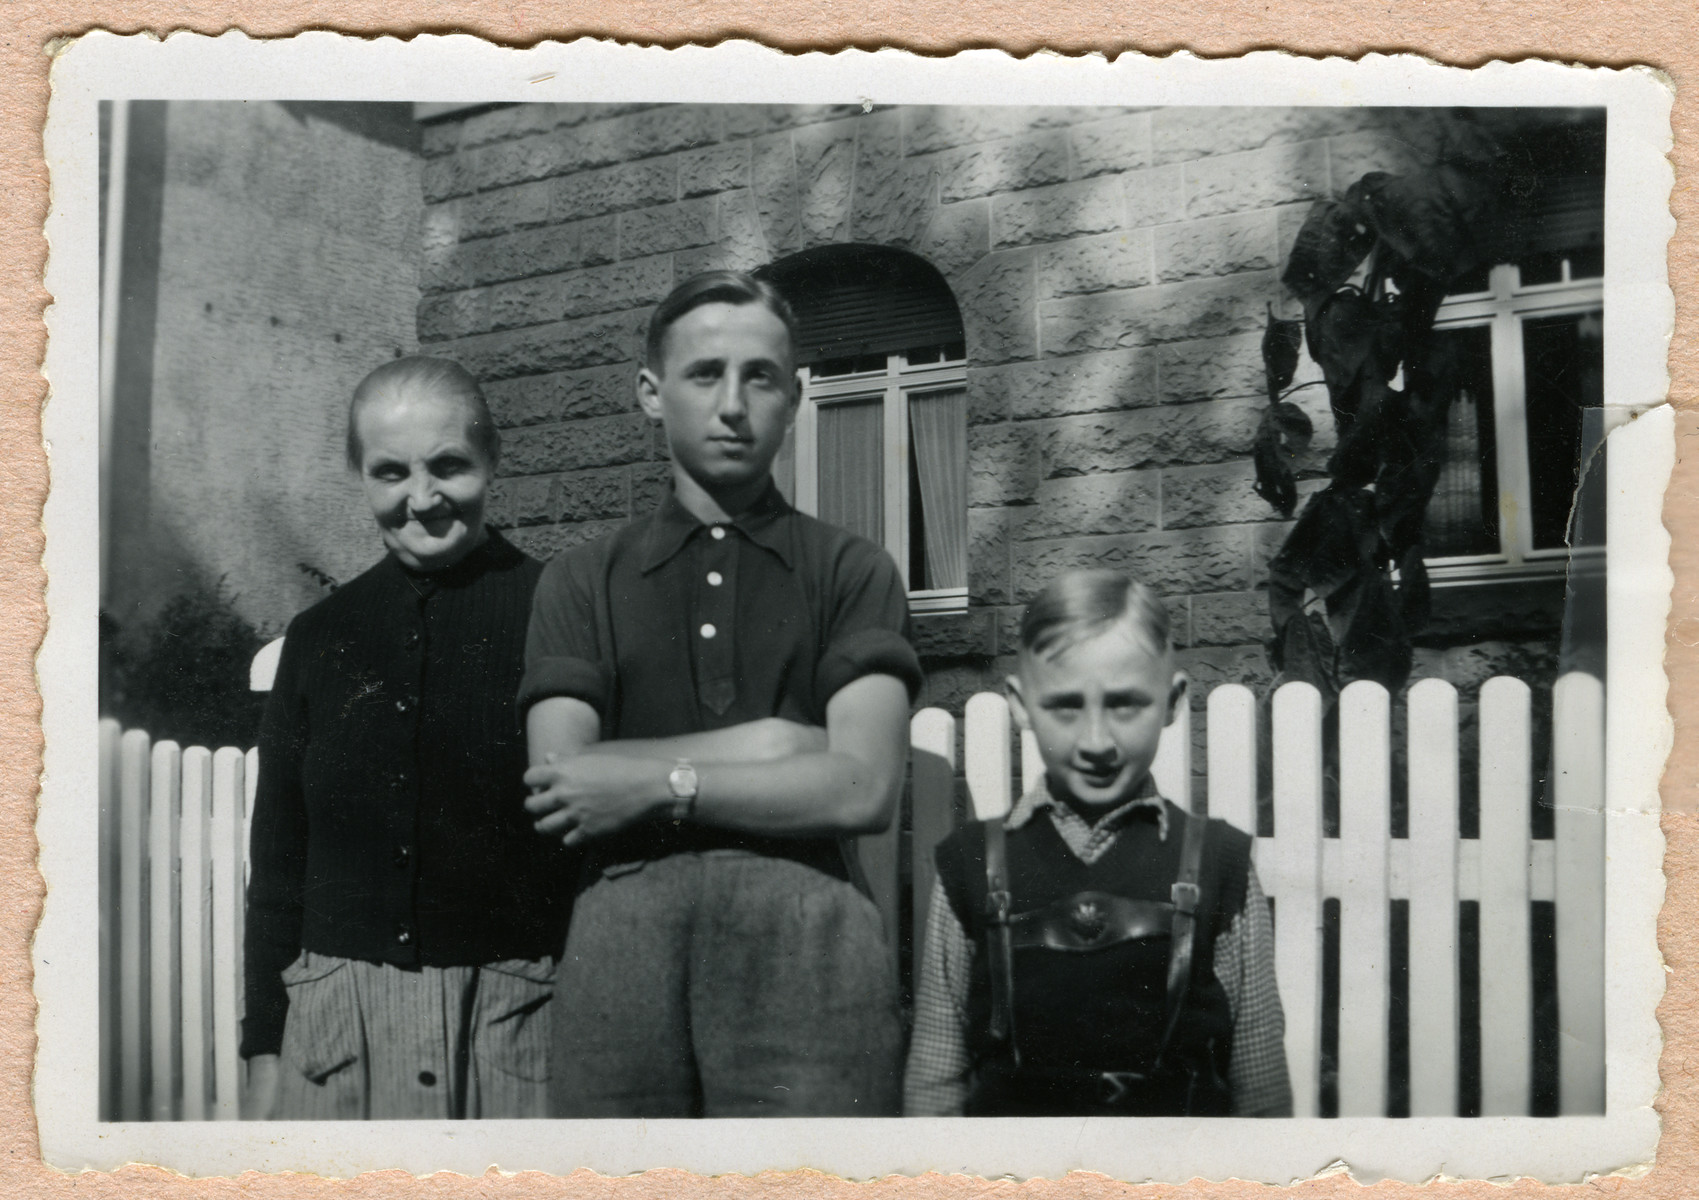 Kurt Feigenbaum (center) poses with his Grandmother Ida and younger brother Werner.